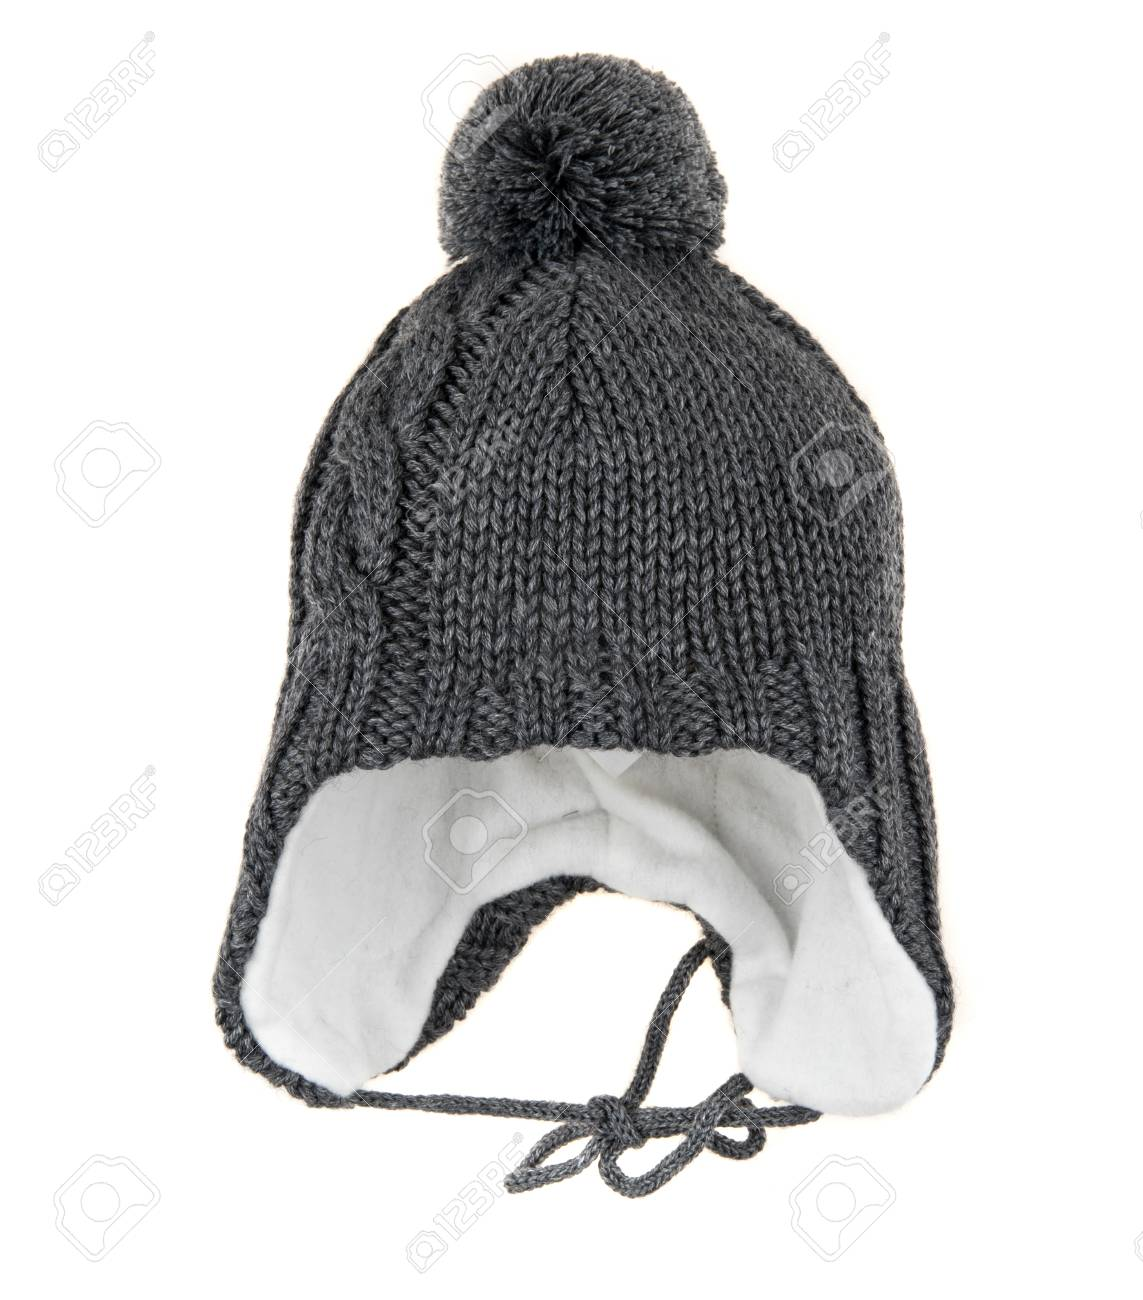 055293b29f3 Children s winter hat isolated on a white background. Stock Photo - 90140625